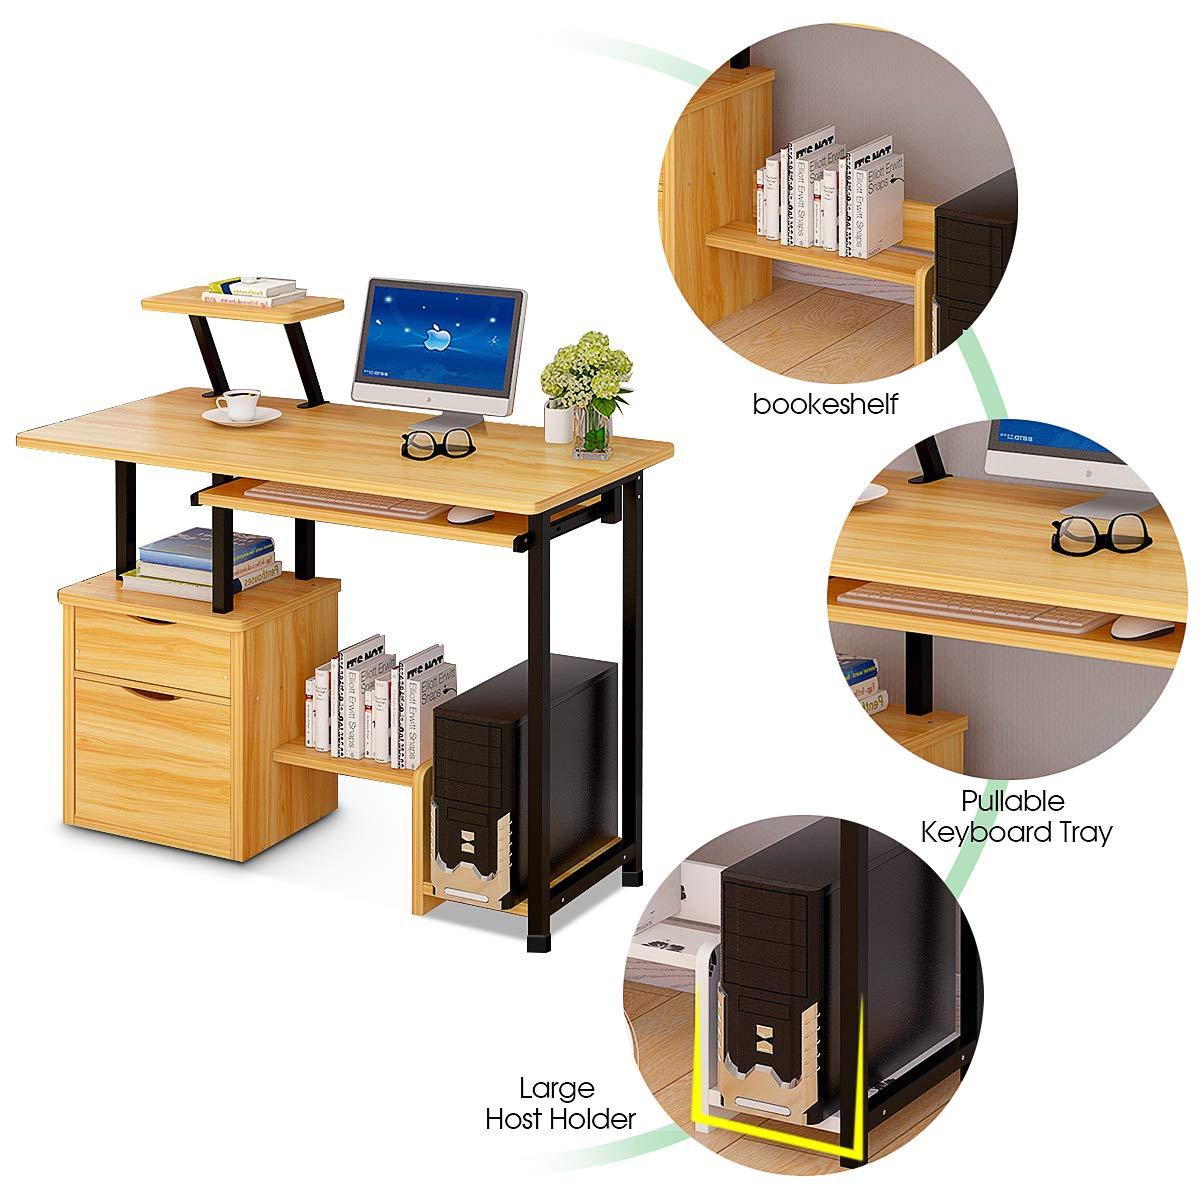 Computer Desk,Laptop Desk Modern Style Writing Study Table Home Office Desk Compact Gaming Desk Multipurpose PC Workstation Steel Frame and Bookshelf for Home Office with Keyboard Tray & CPU Holder by Suninhome (Image #4)